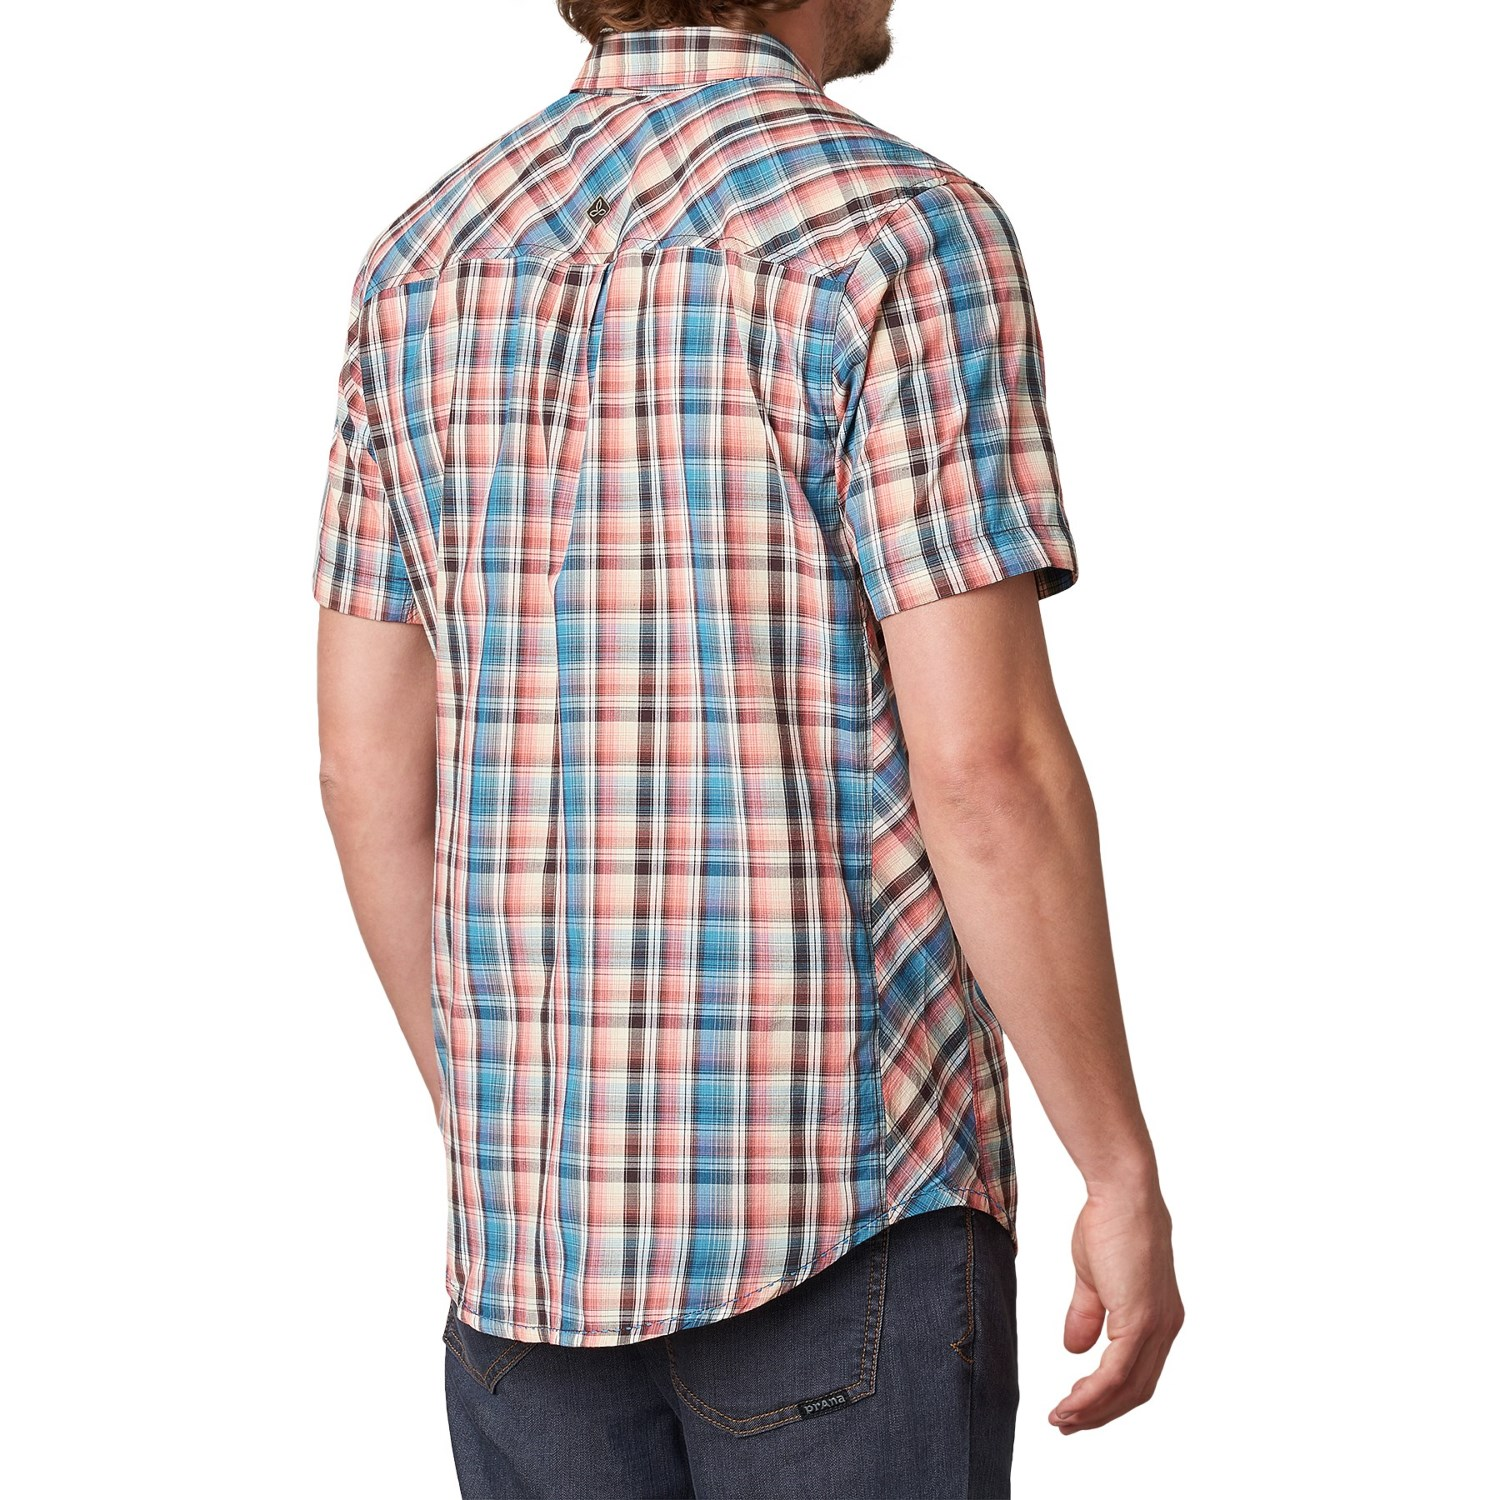 Enjoy free shipping and easy returns every day at Kohl's. Find great deals on Mens Button-Down Shirts Short Sleeve Tops at Kohl's today!